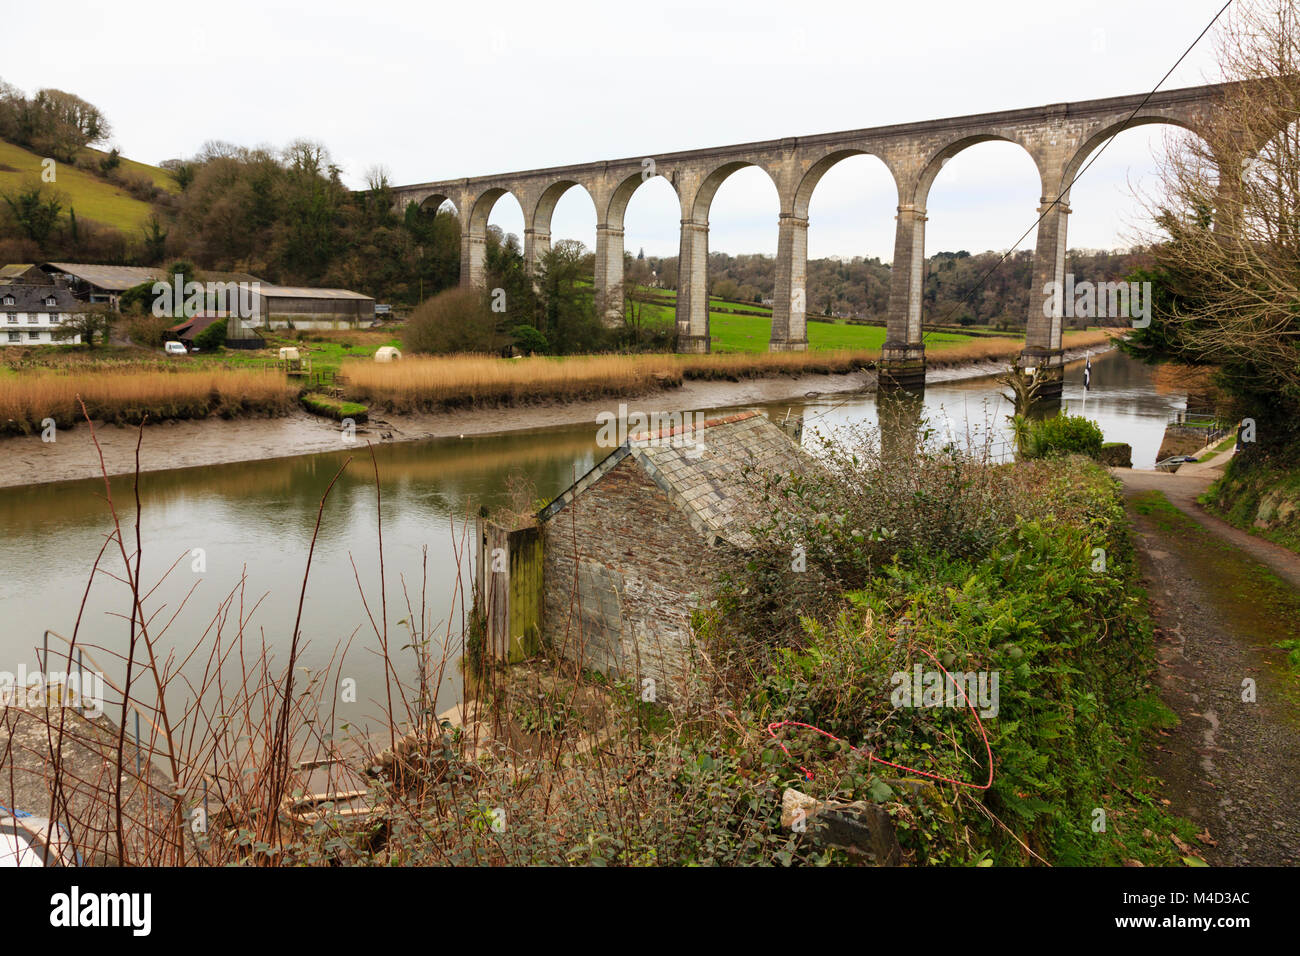 Calstock railway viaduct over the River Tamar, Cornwall, England. Used as a location shot in the Sky TV series Delicious. - Stock Image